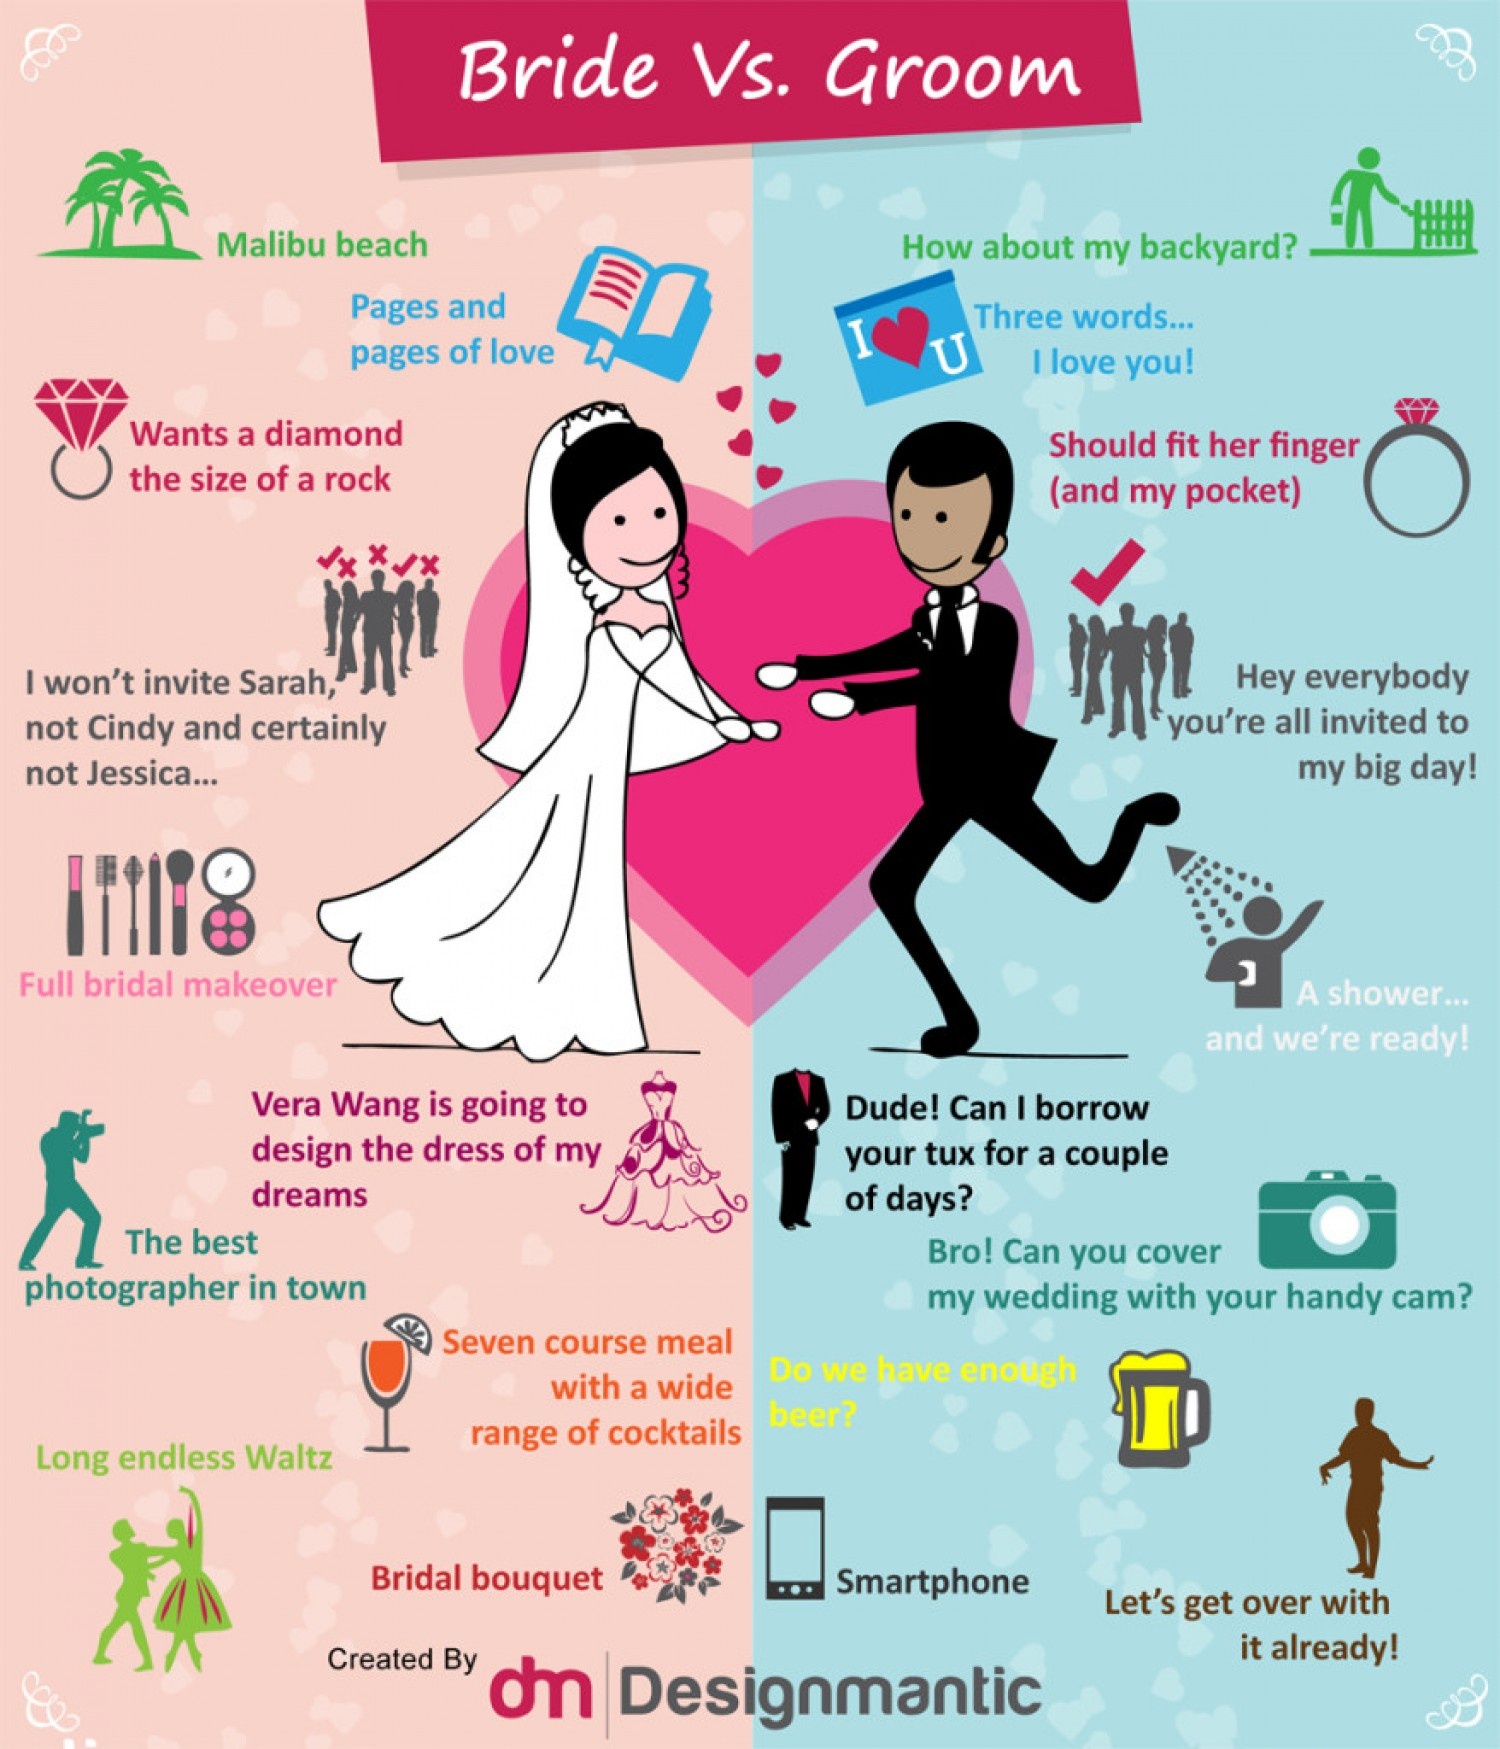 Bride vs. Groom: wedding planning